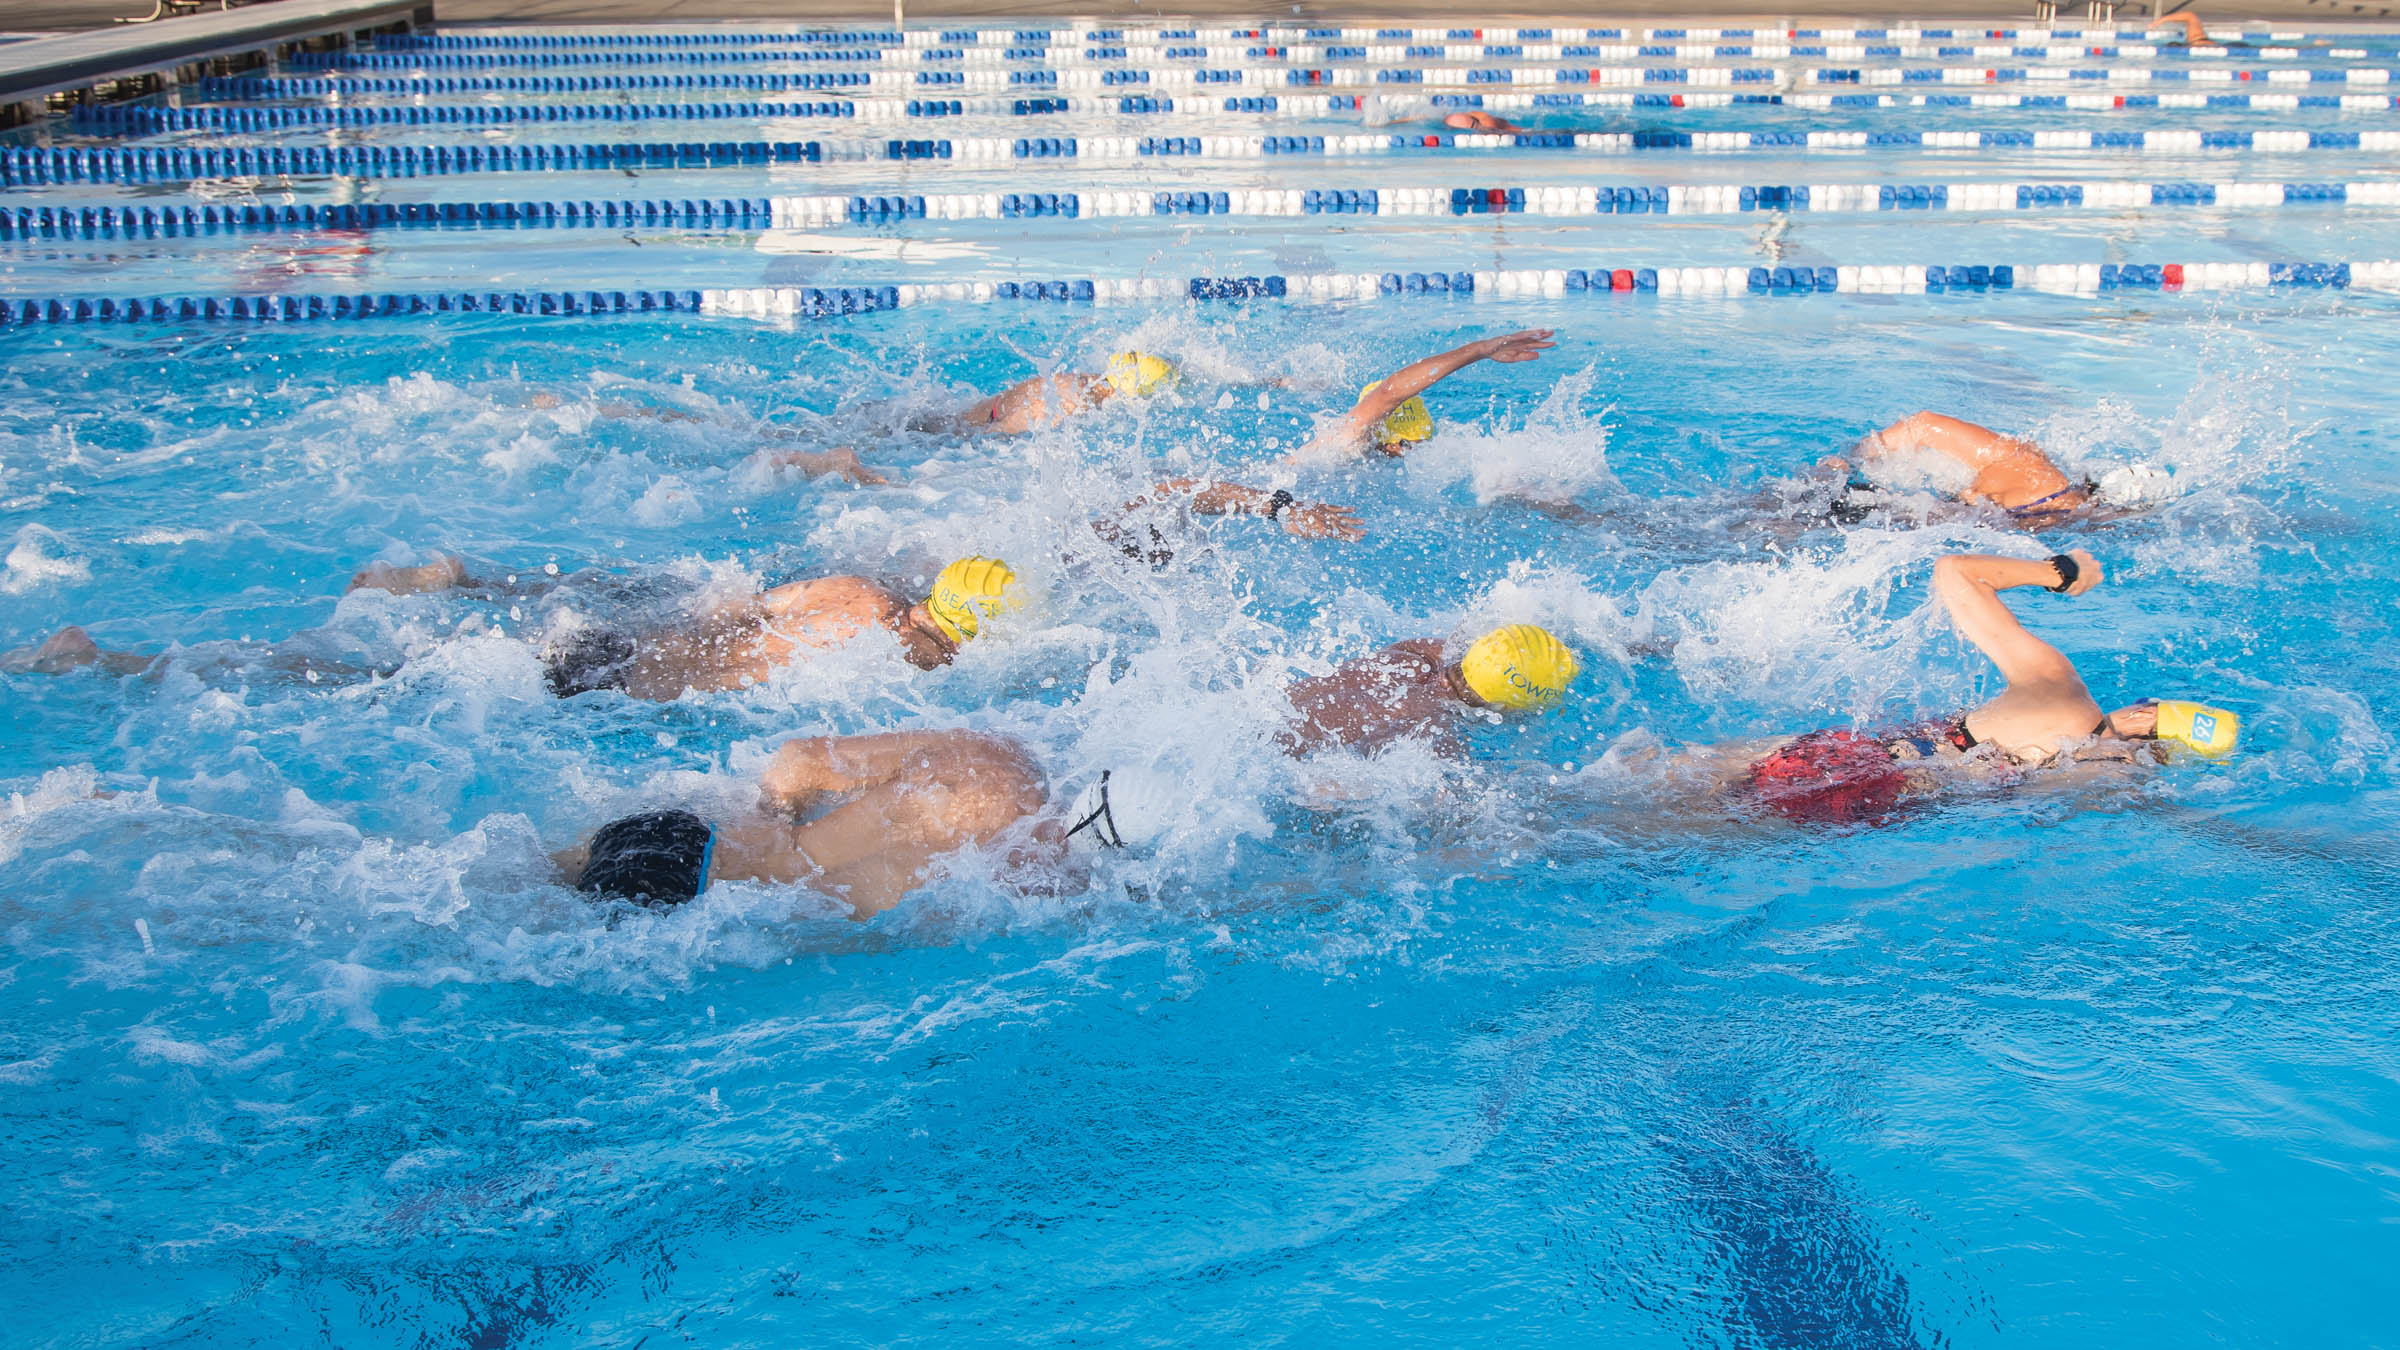 Pack swimming in a pool